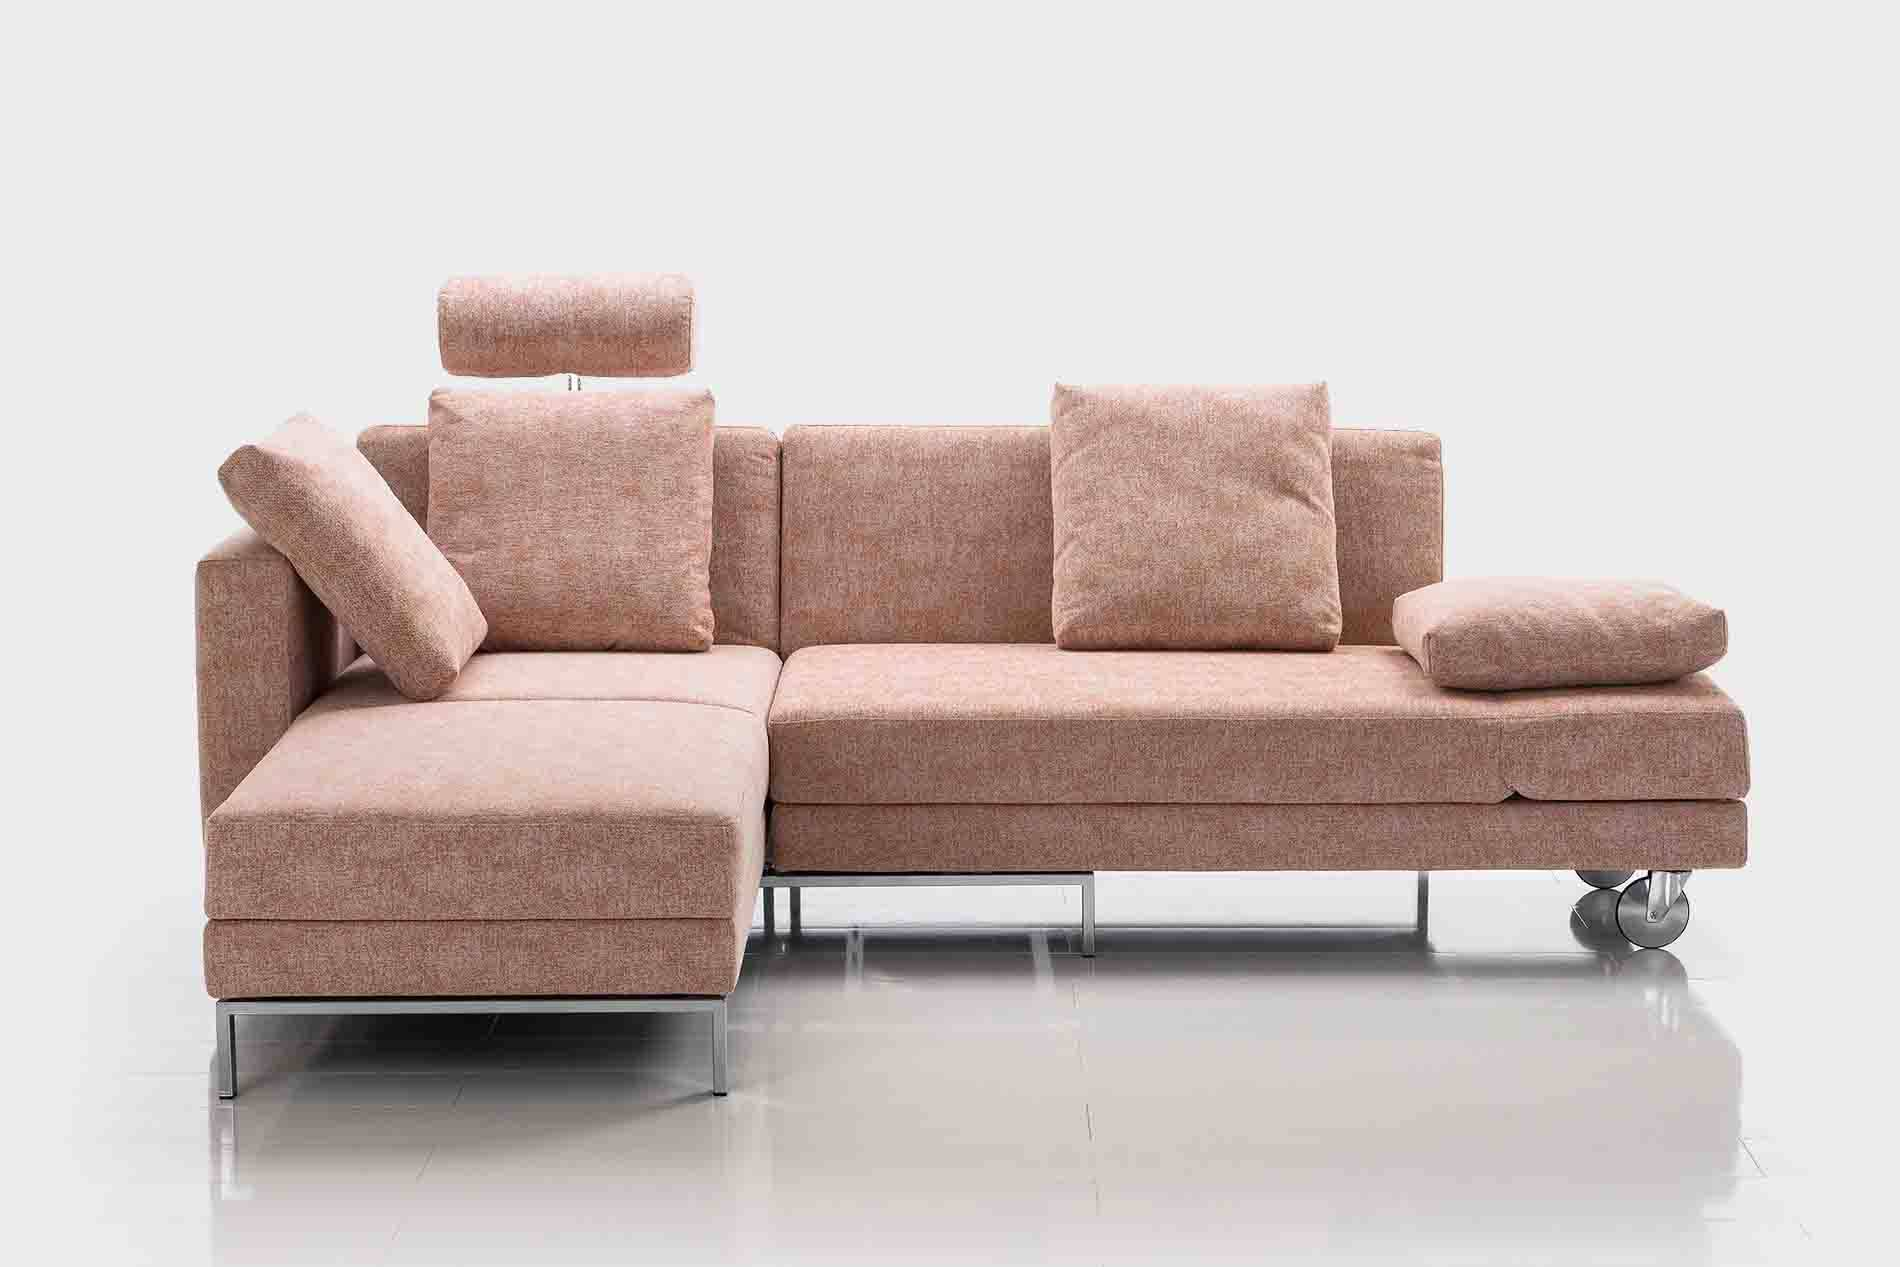 Bruehl Four Two Sofa Schlafsofa Eckgruppe